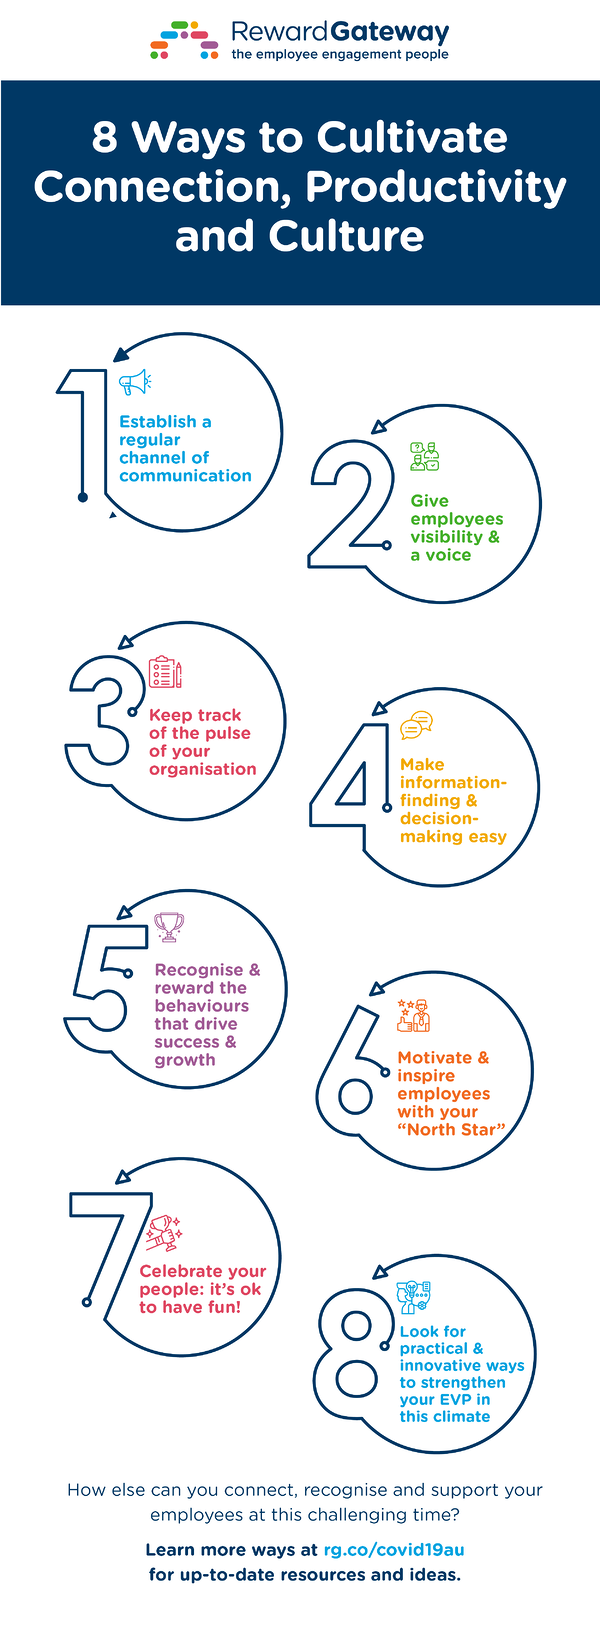 au-infographic-8-ways-to-cultivate-connection-productivity-culture